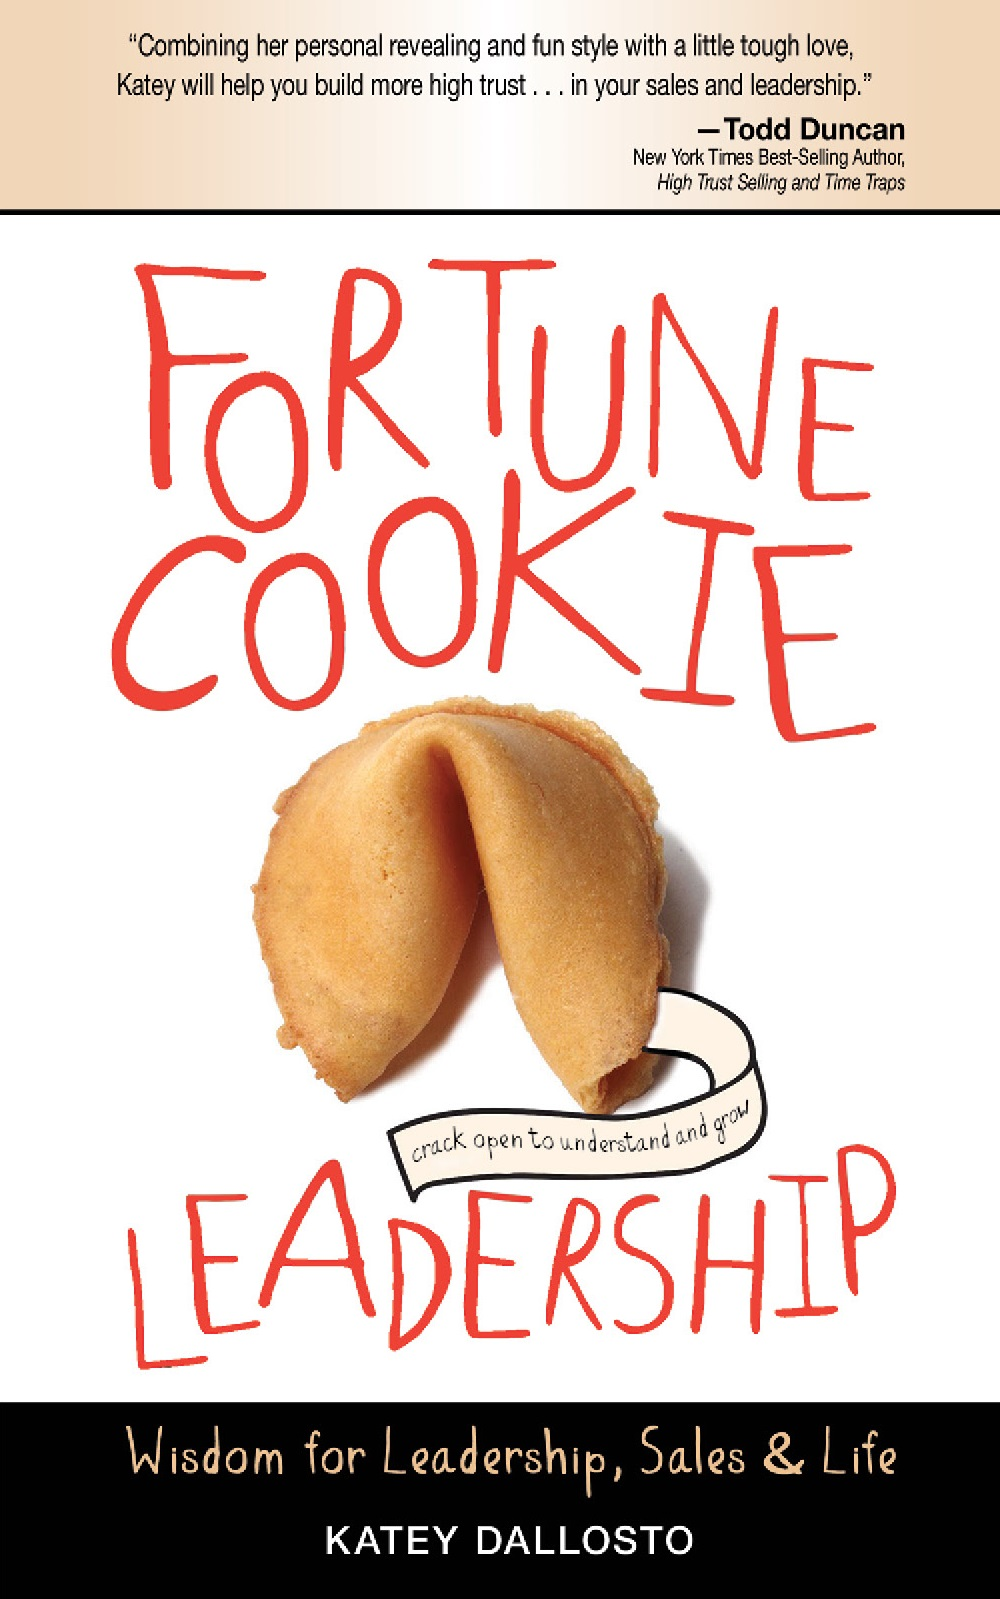 FortuneCookieLeadership CVR FINAL_FrontCoverOnly(1).jpg